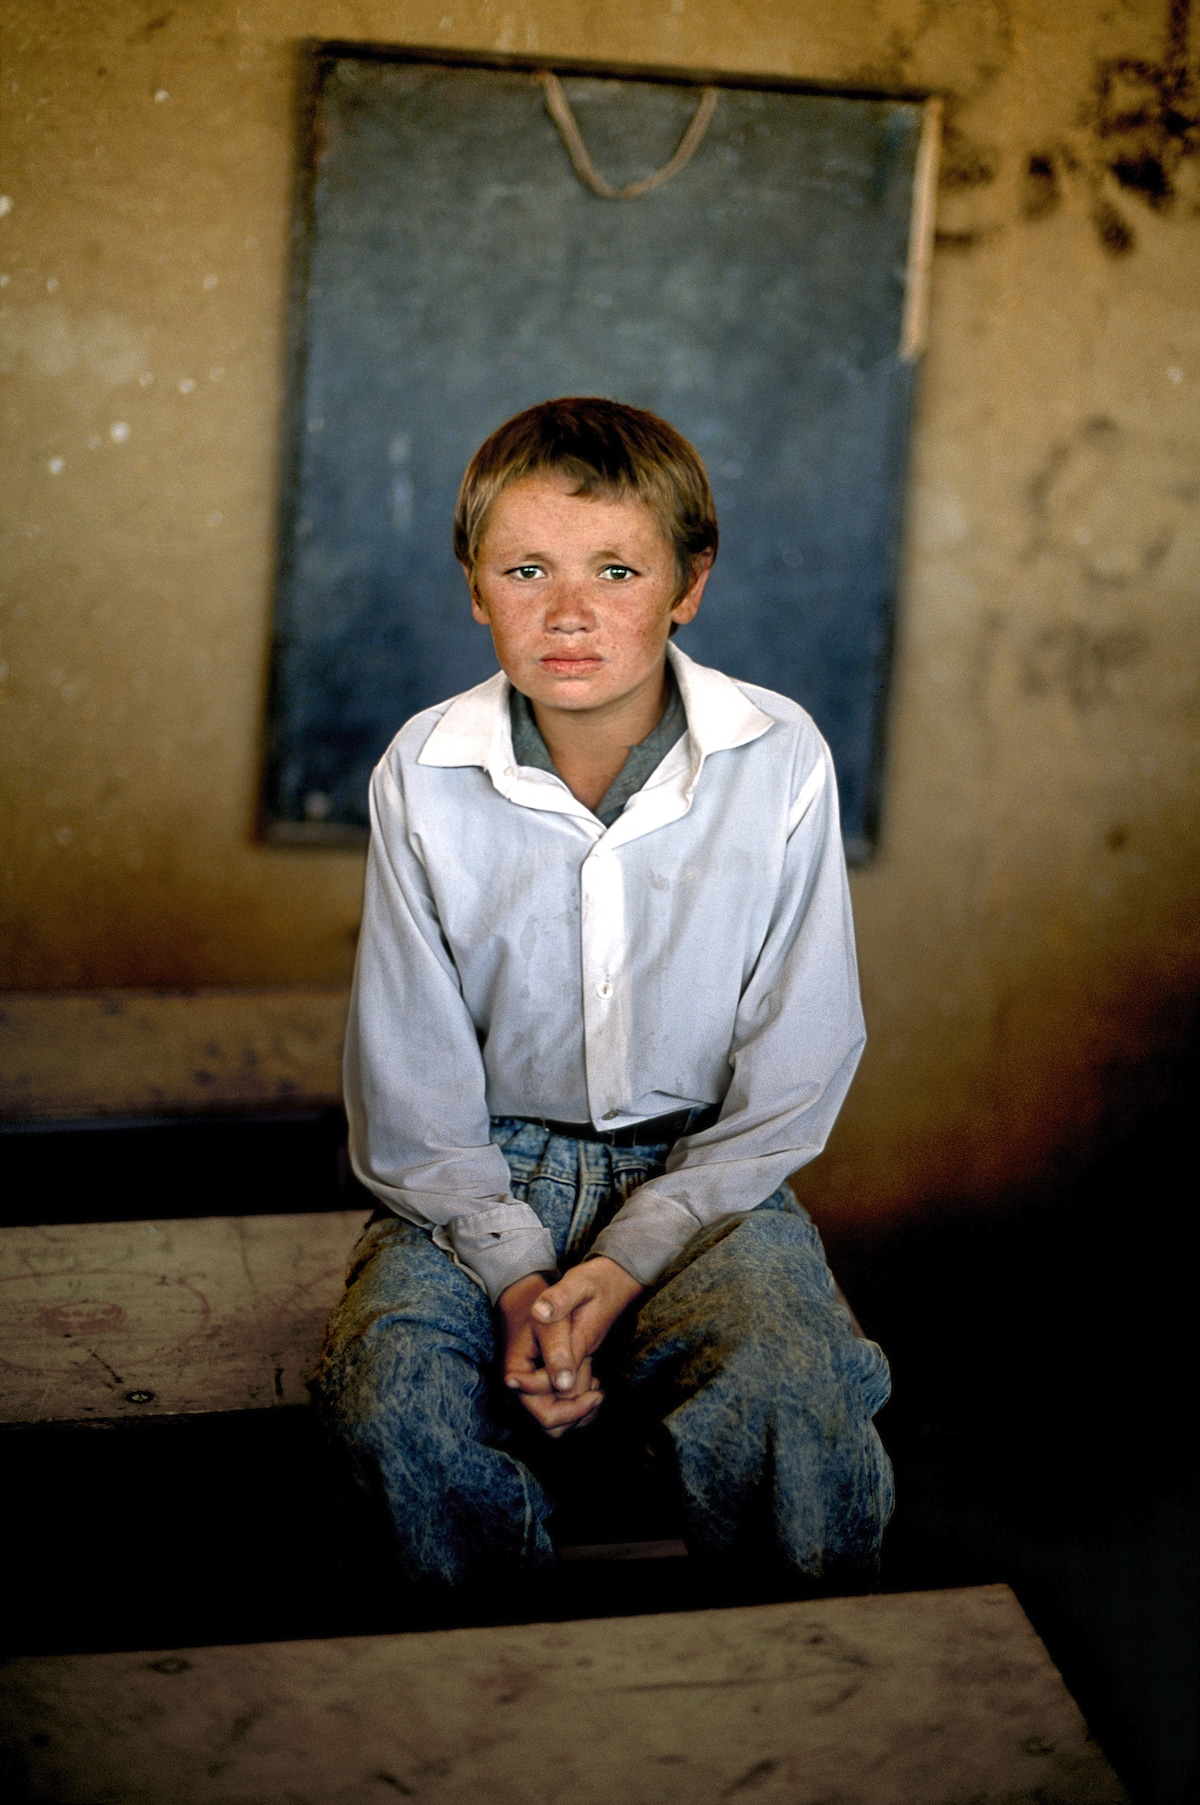 Portrait of a Boy from Afghanistan by Steve McCurry